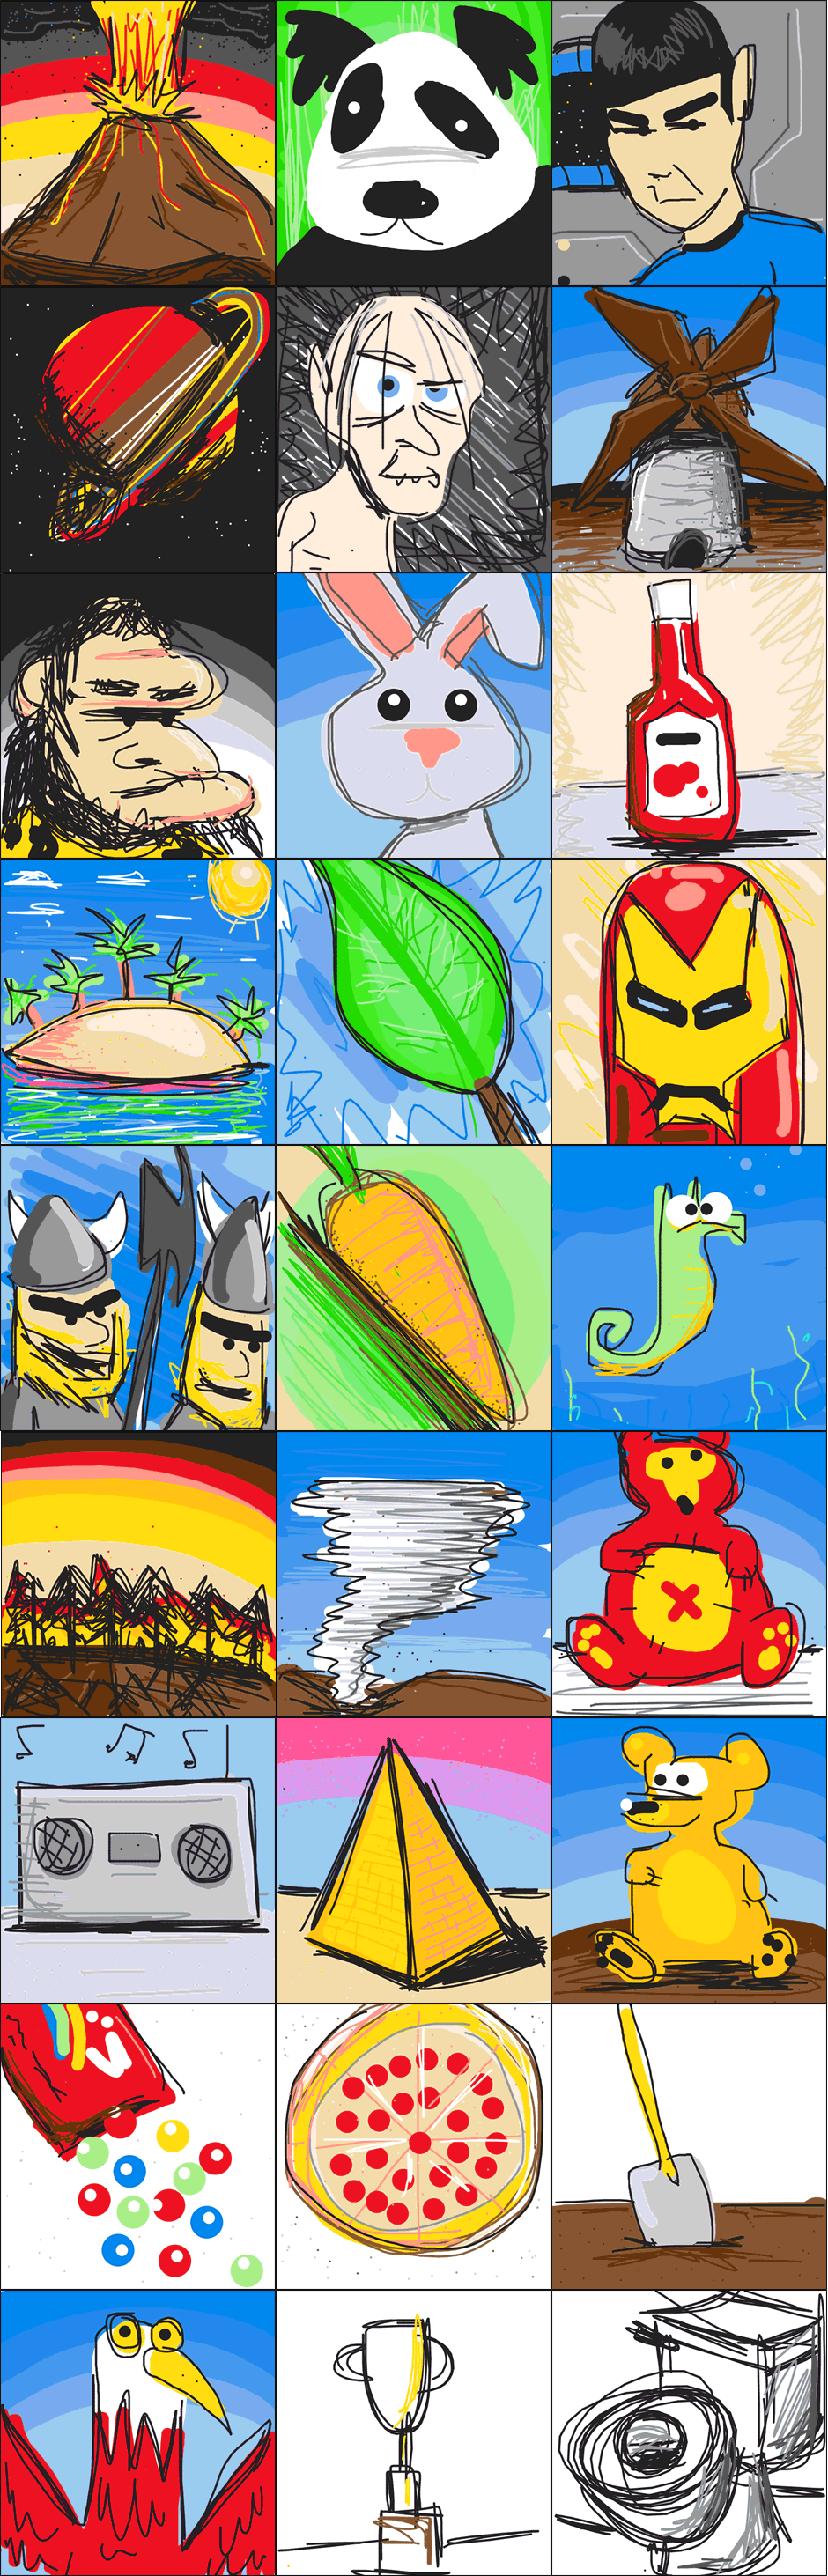 DrawSomething Artwork